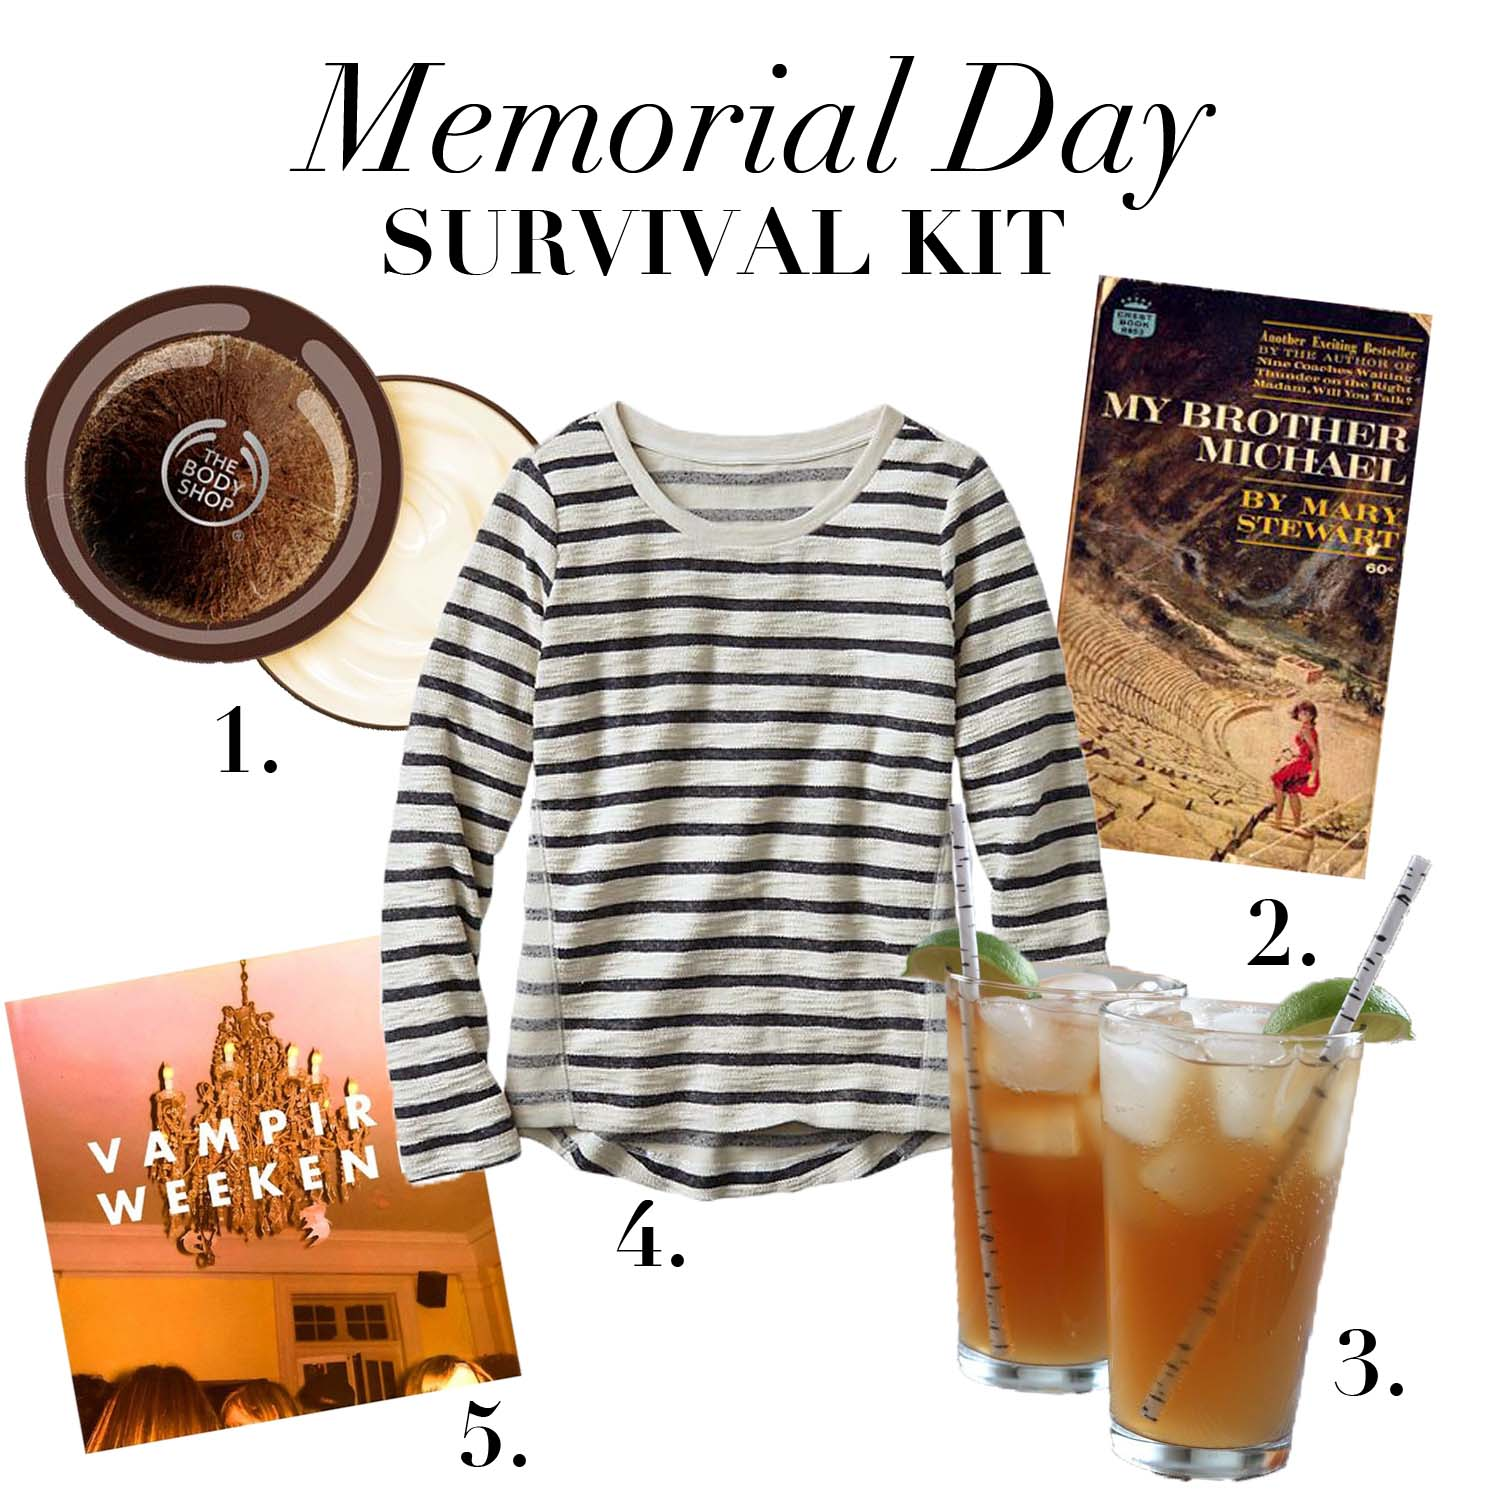 Memorial Day Survival Kit | Design: Laura Messersmith